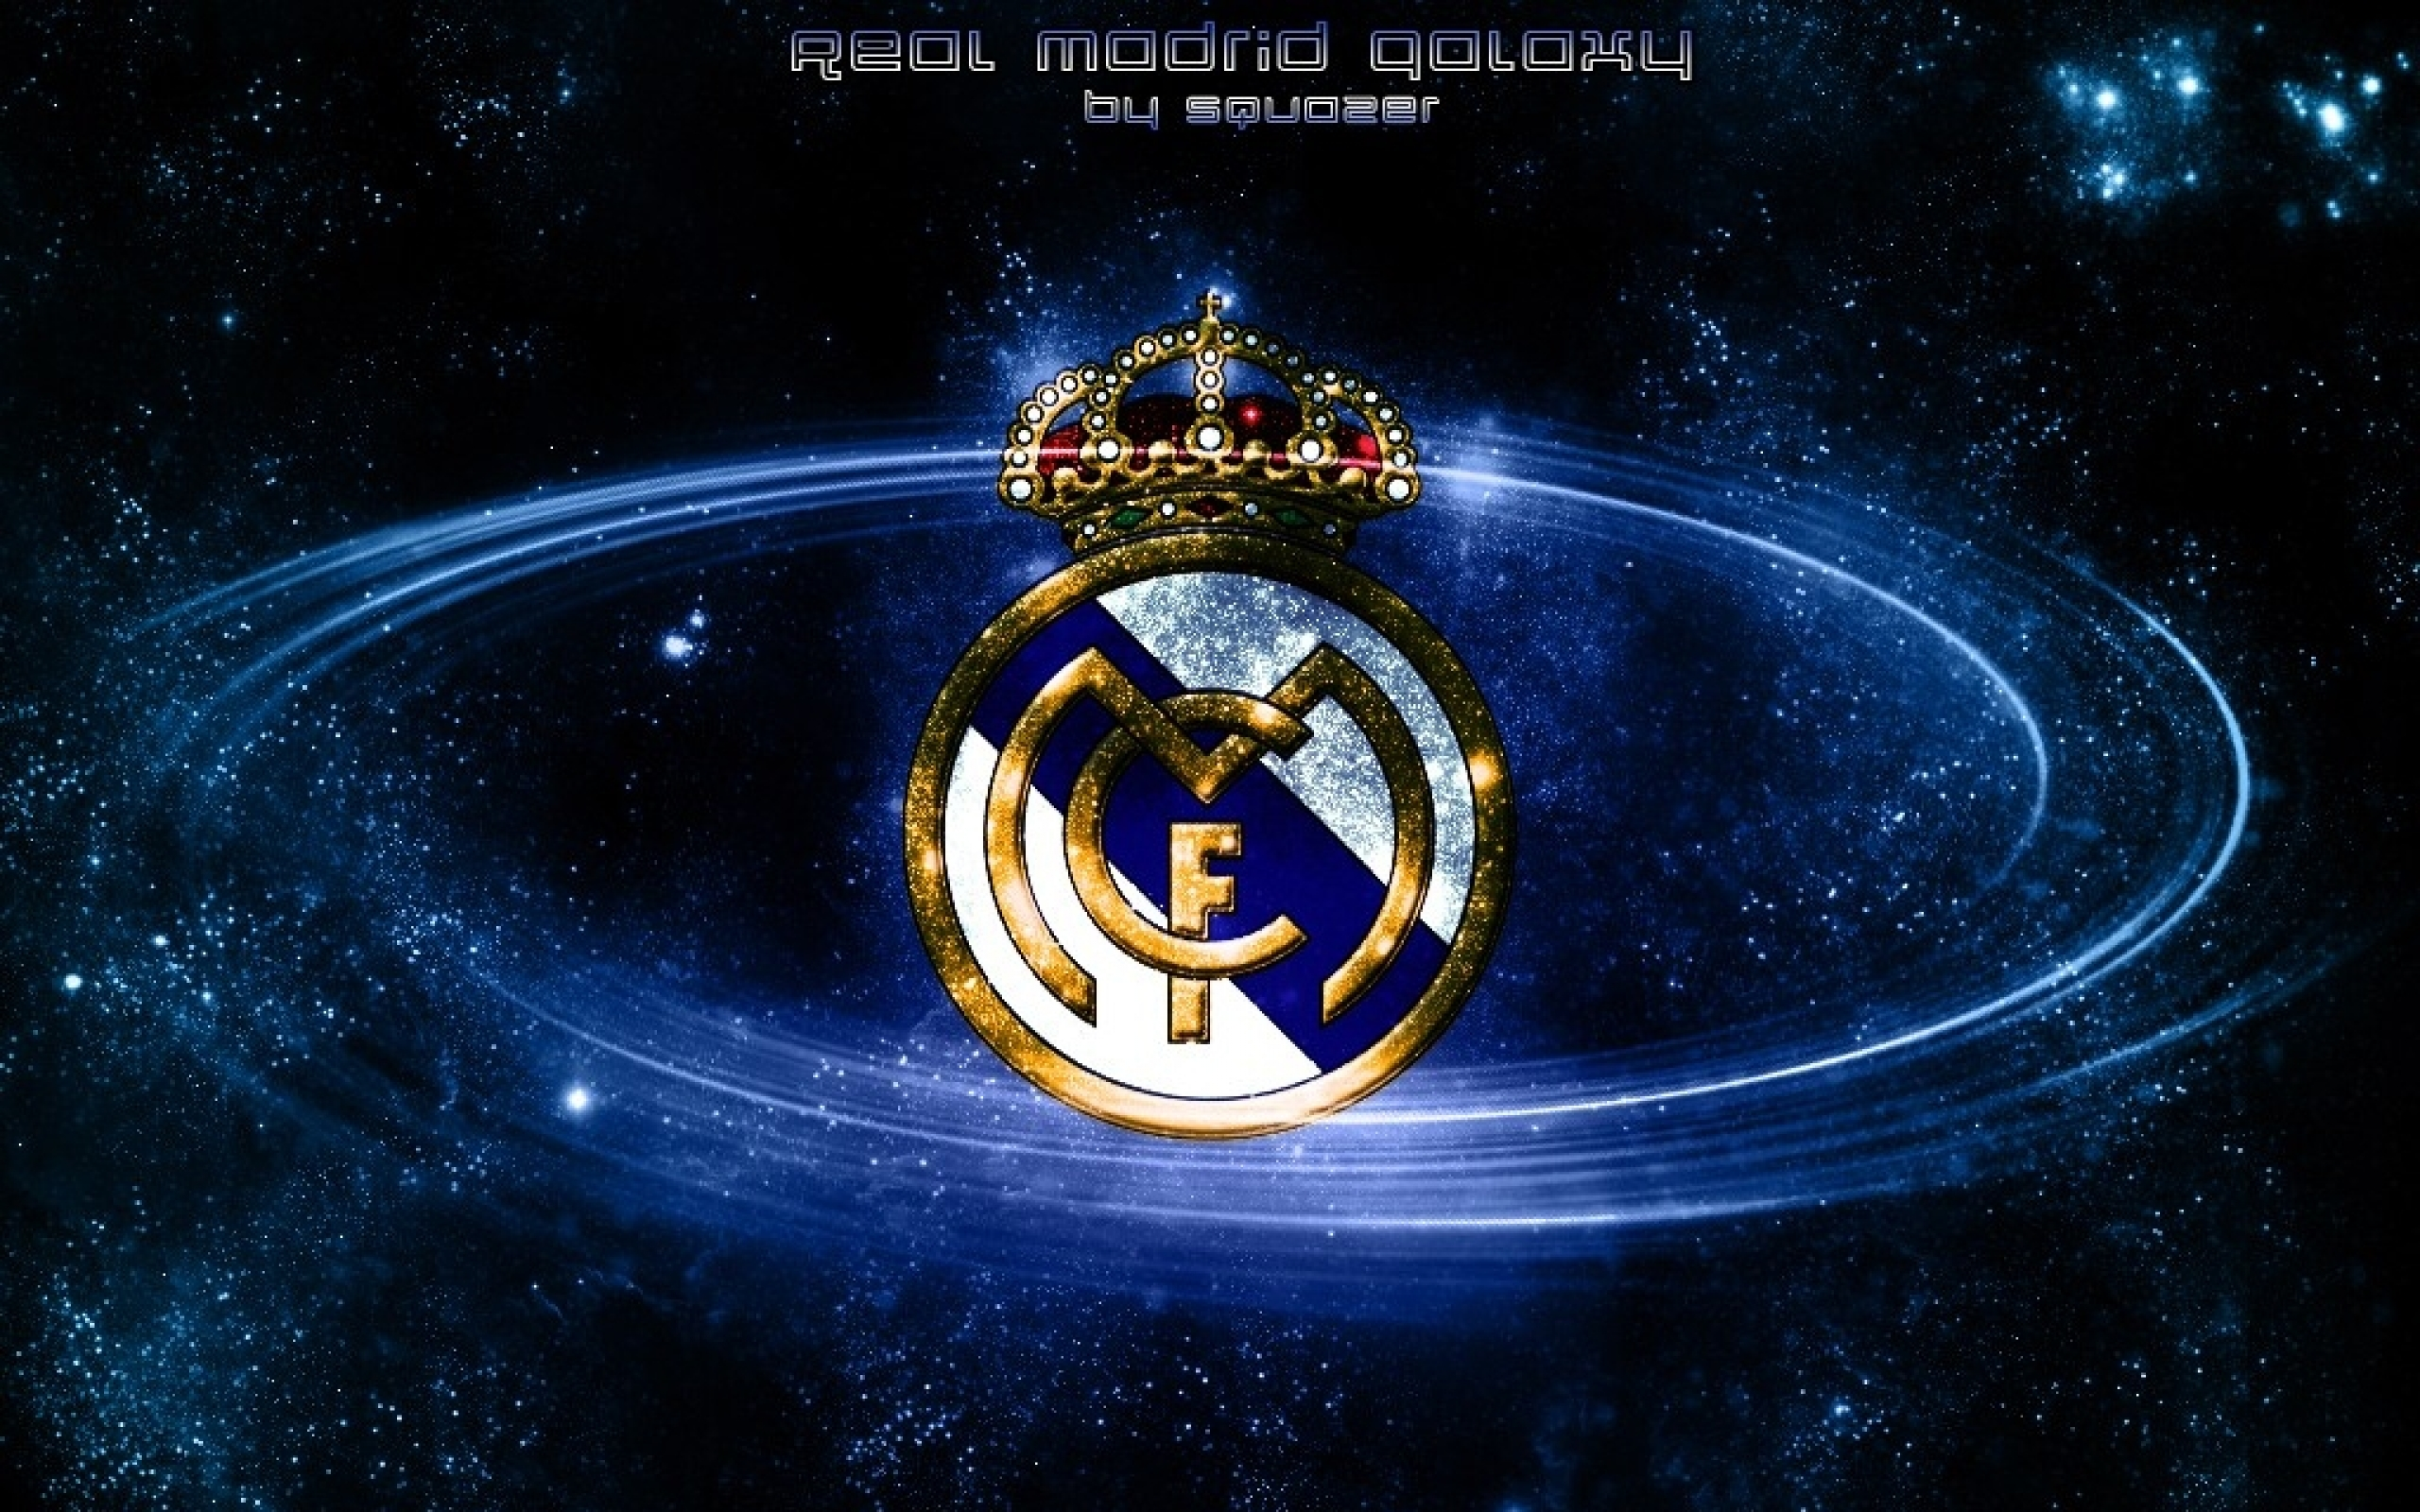 Download Wallpaper Real Madrid